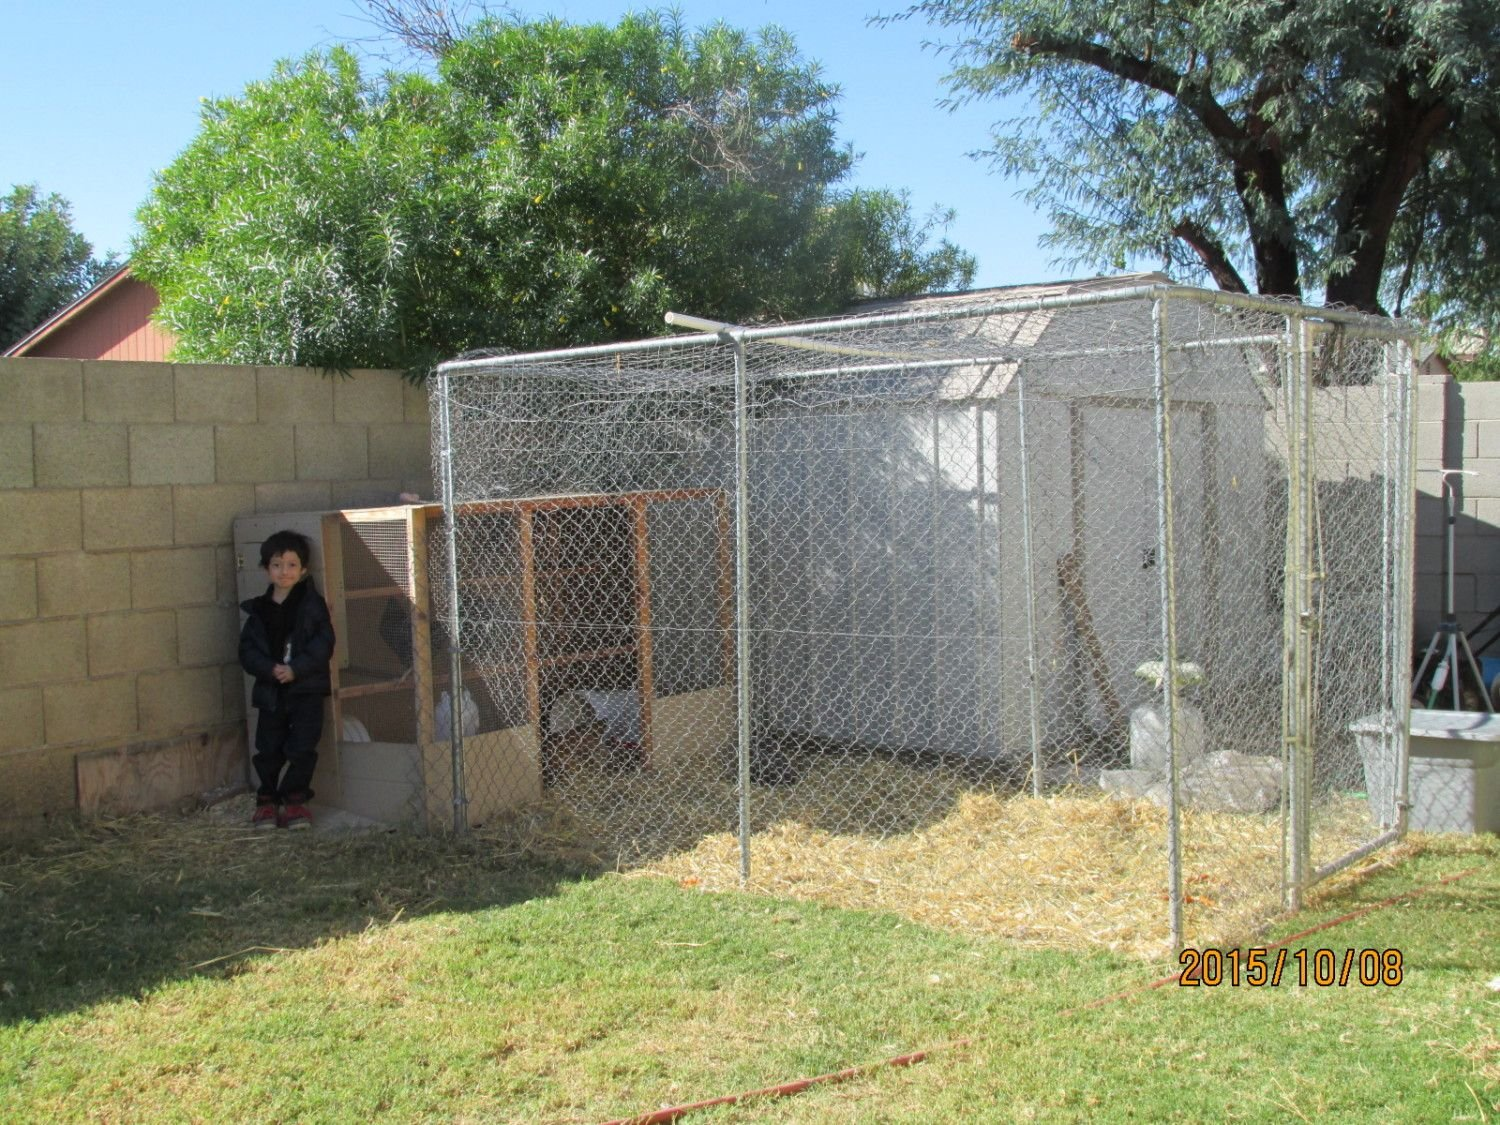 This is our coop with my kid standing next to it.